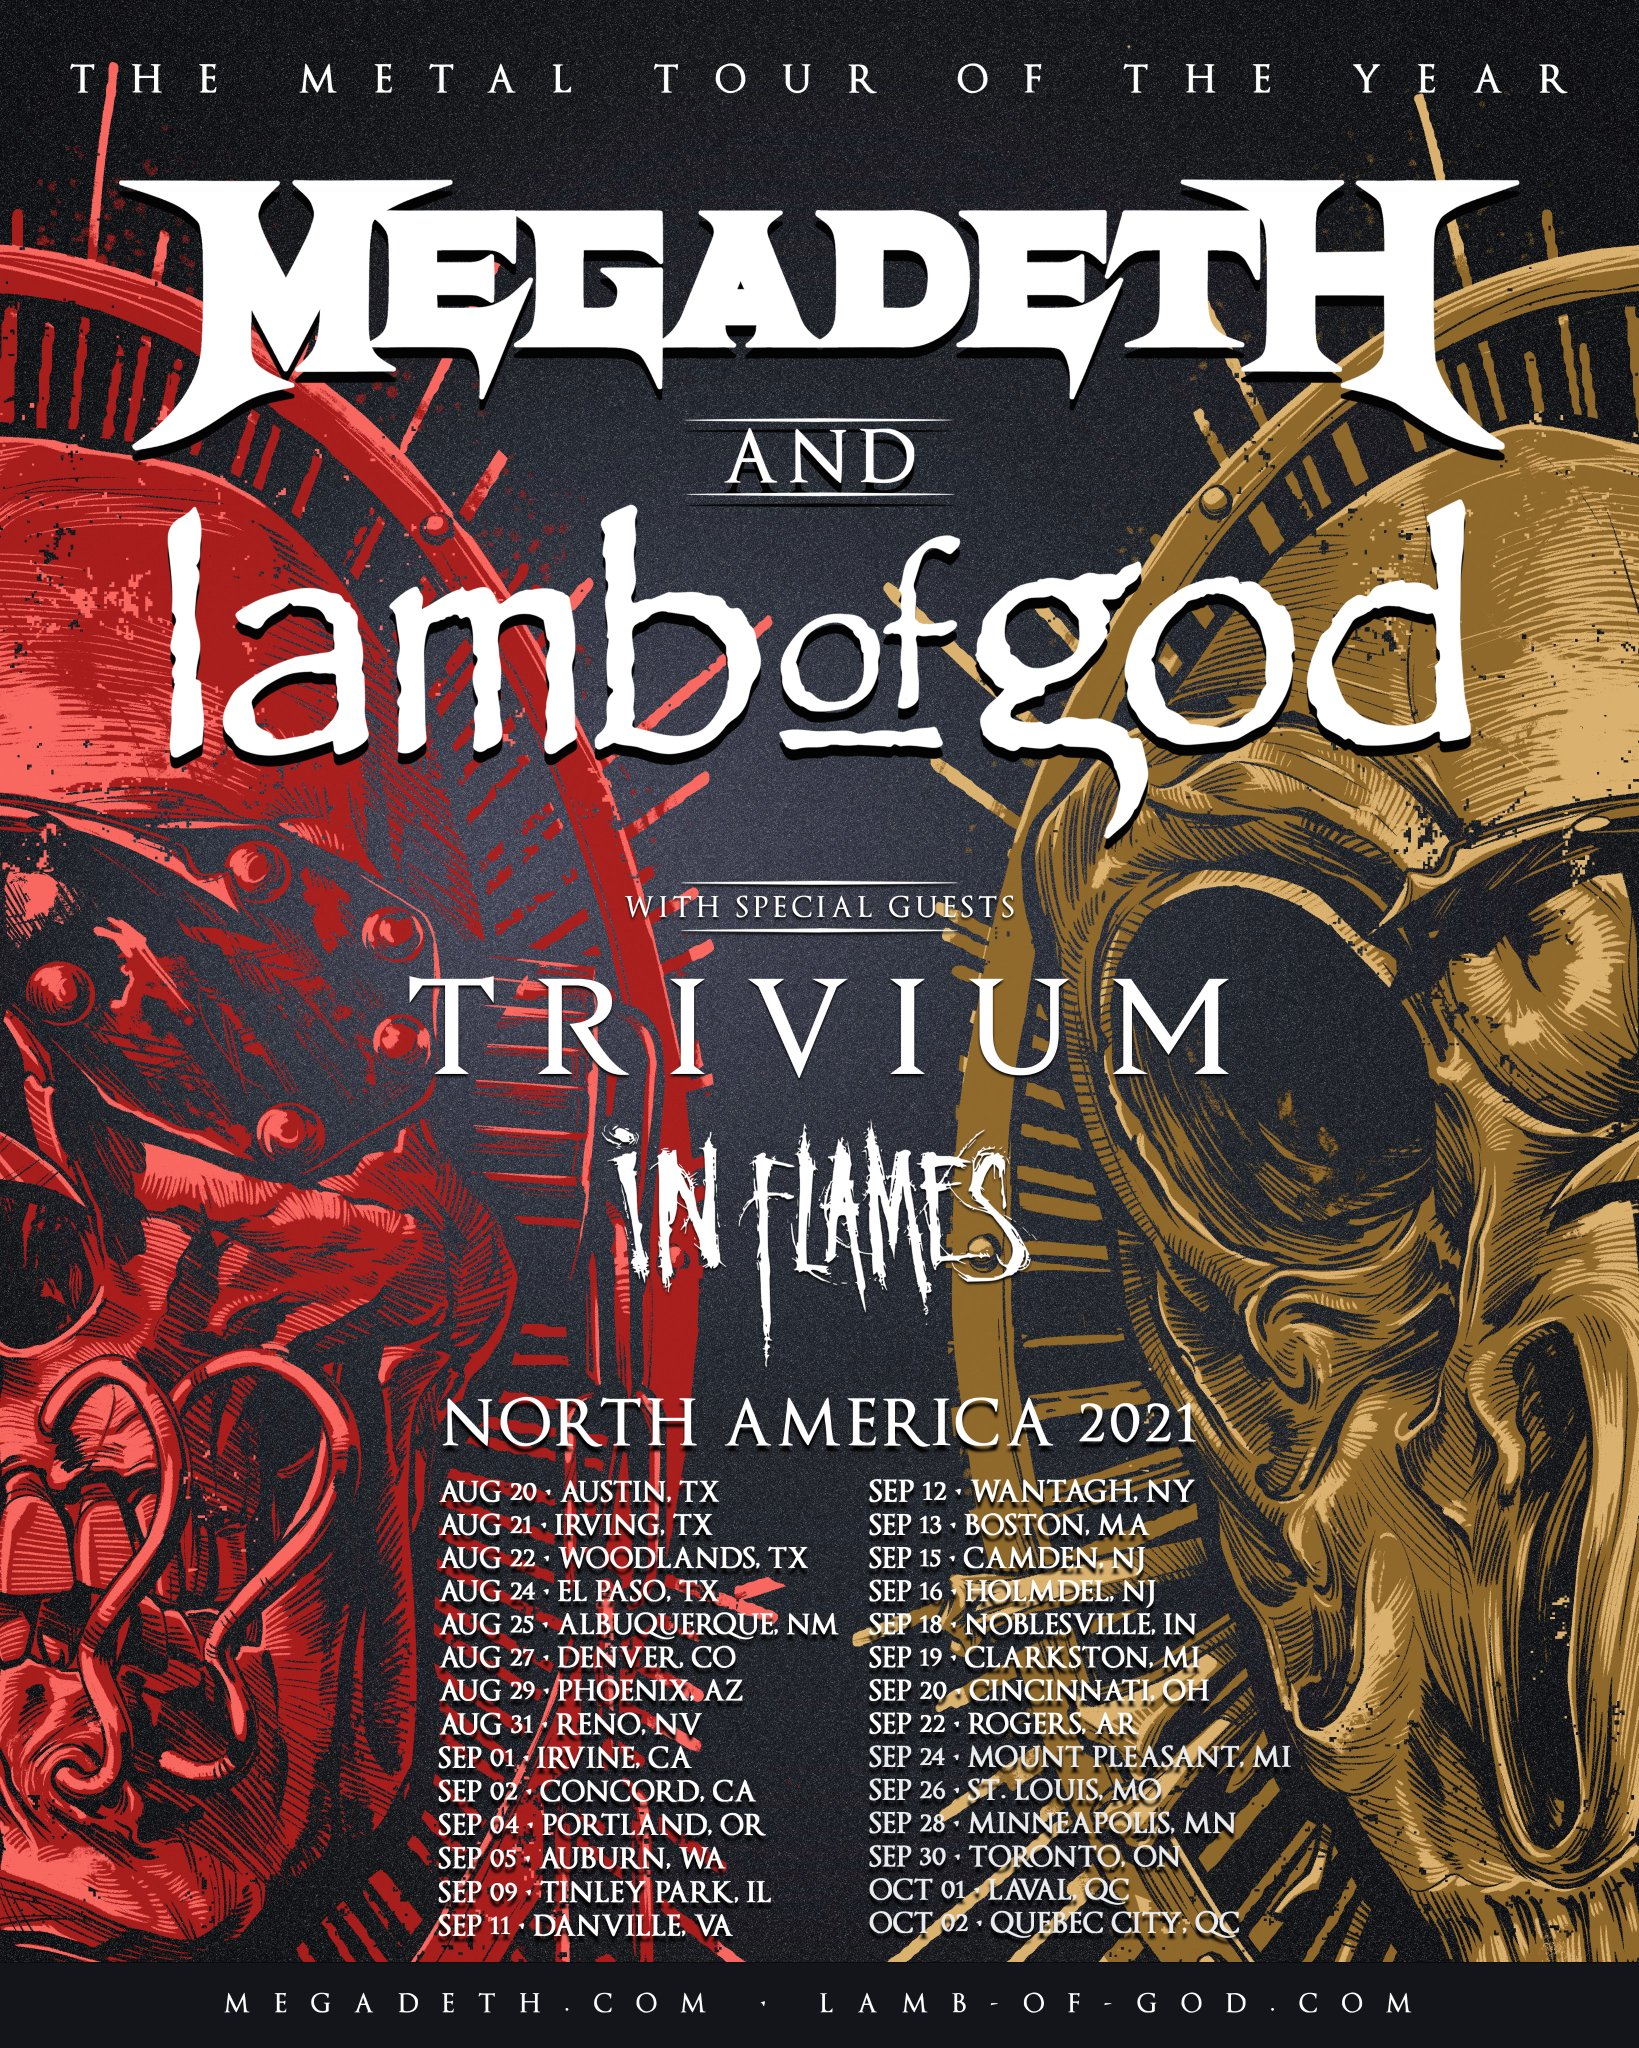 MEGADETH, LAMB OF GOD, TRIVIUM + IN FLAMES: Rescheduled Dates For The Metal Tour Of The Year Announced Photo